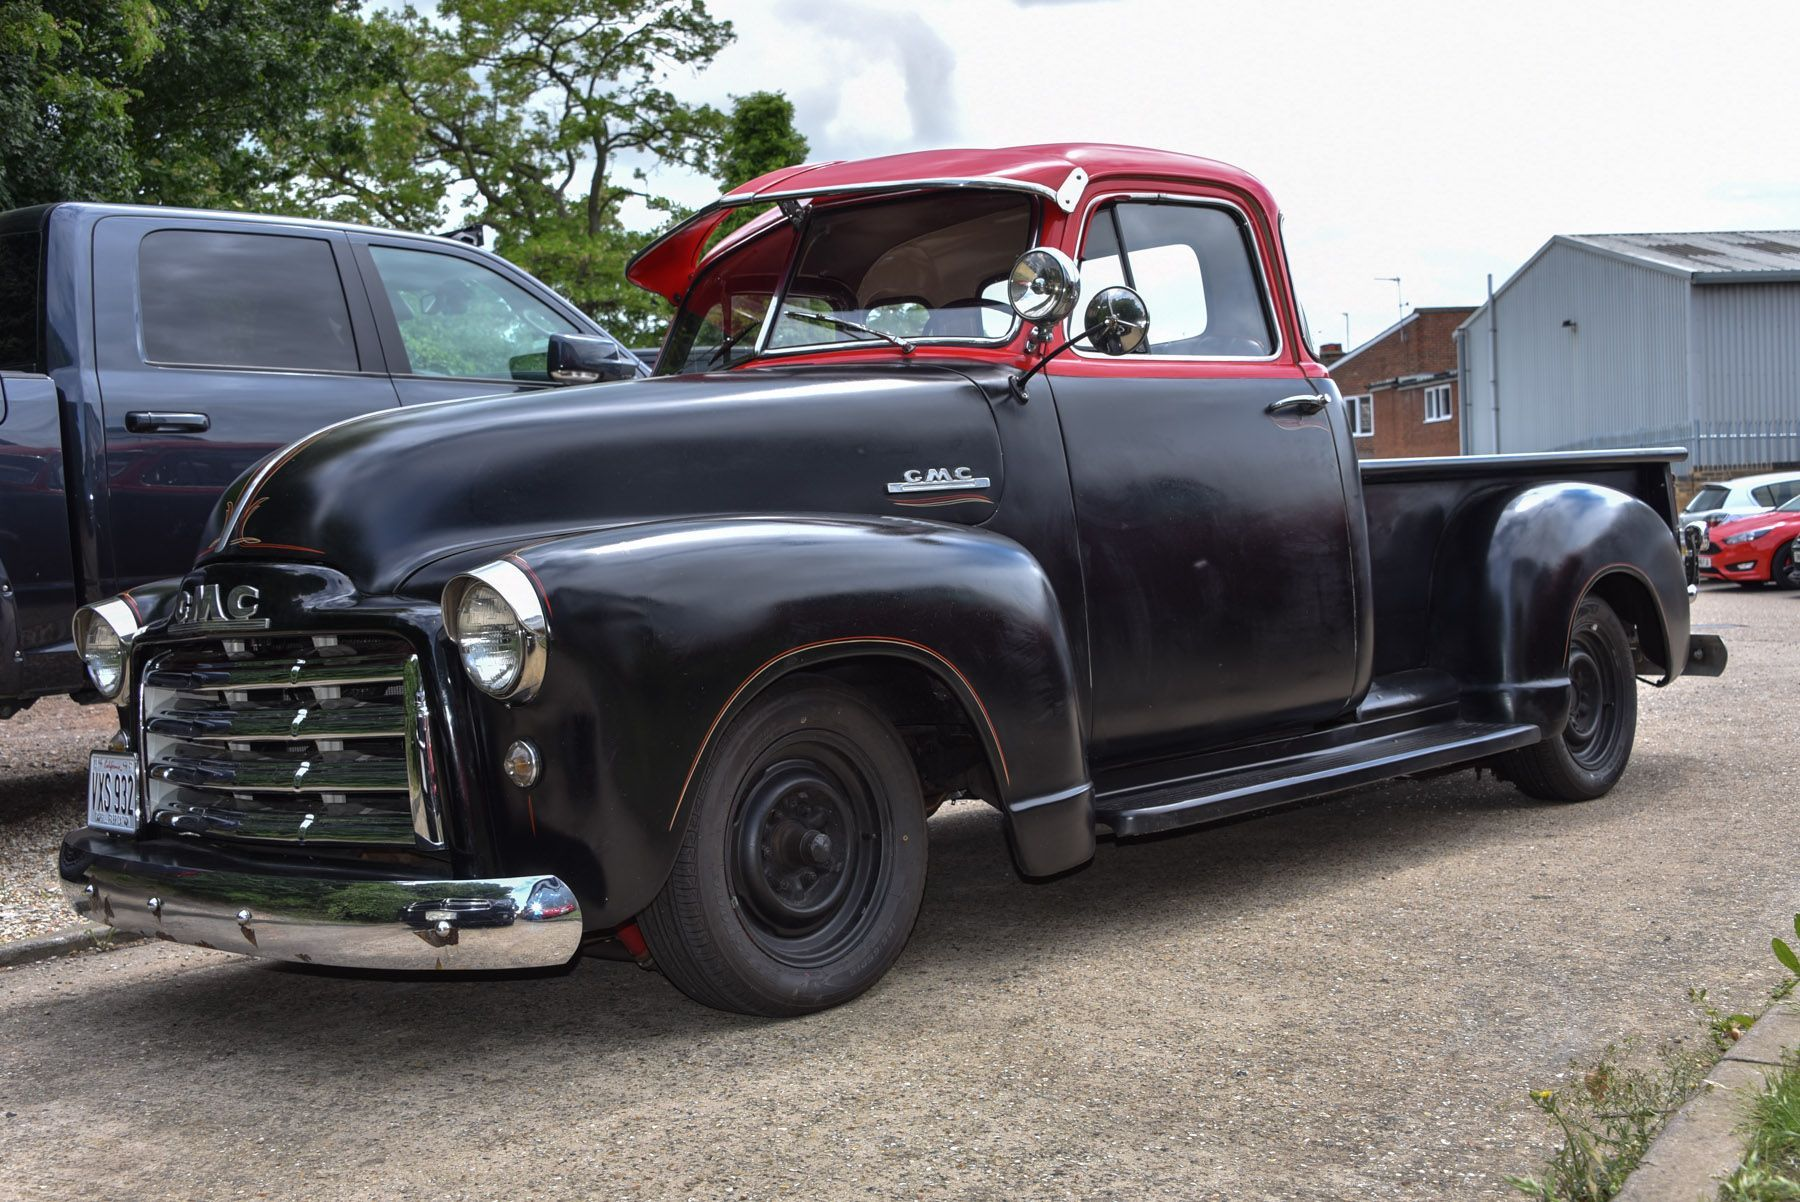 1951 Classic Americana Gmc Pickup With New Chevrolet 350 V8 Auto For Sale In The U K Www Boatwright Co Uk Vin American Pickup Trucks Classic Trucks Cars Uk